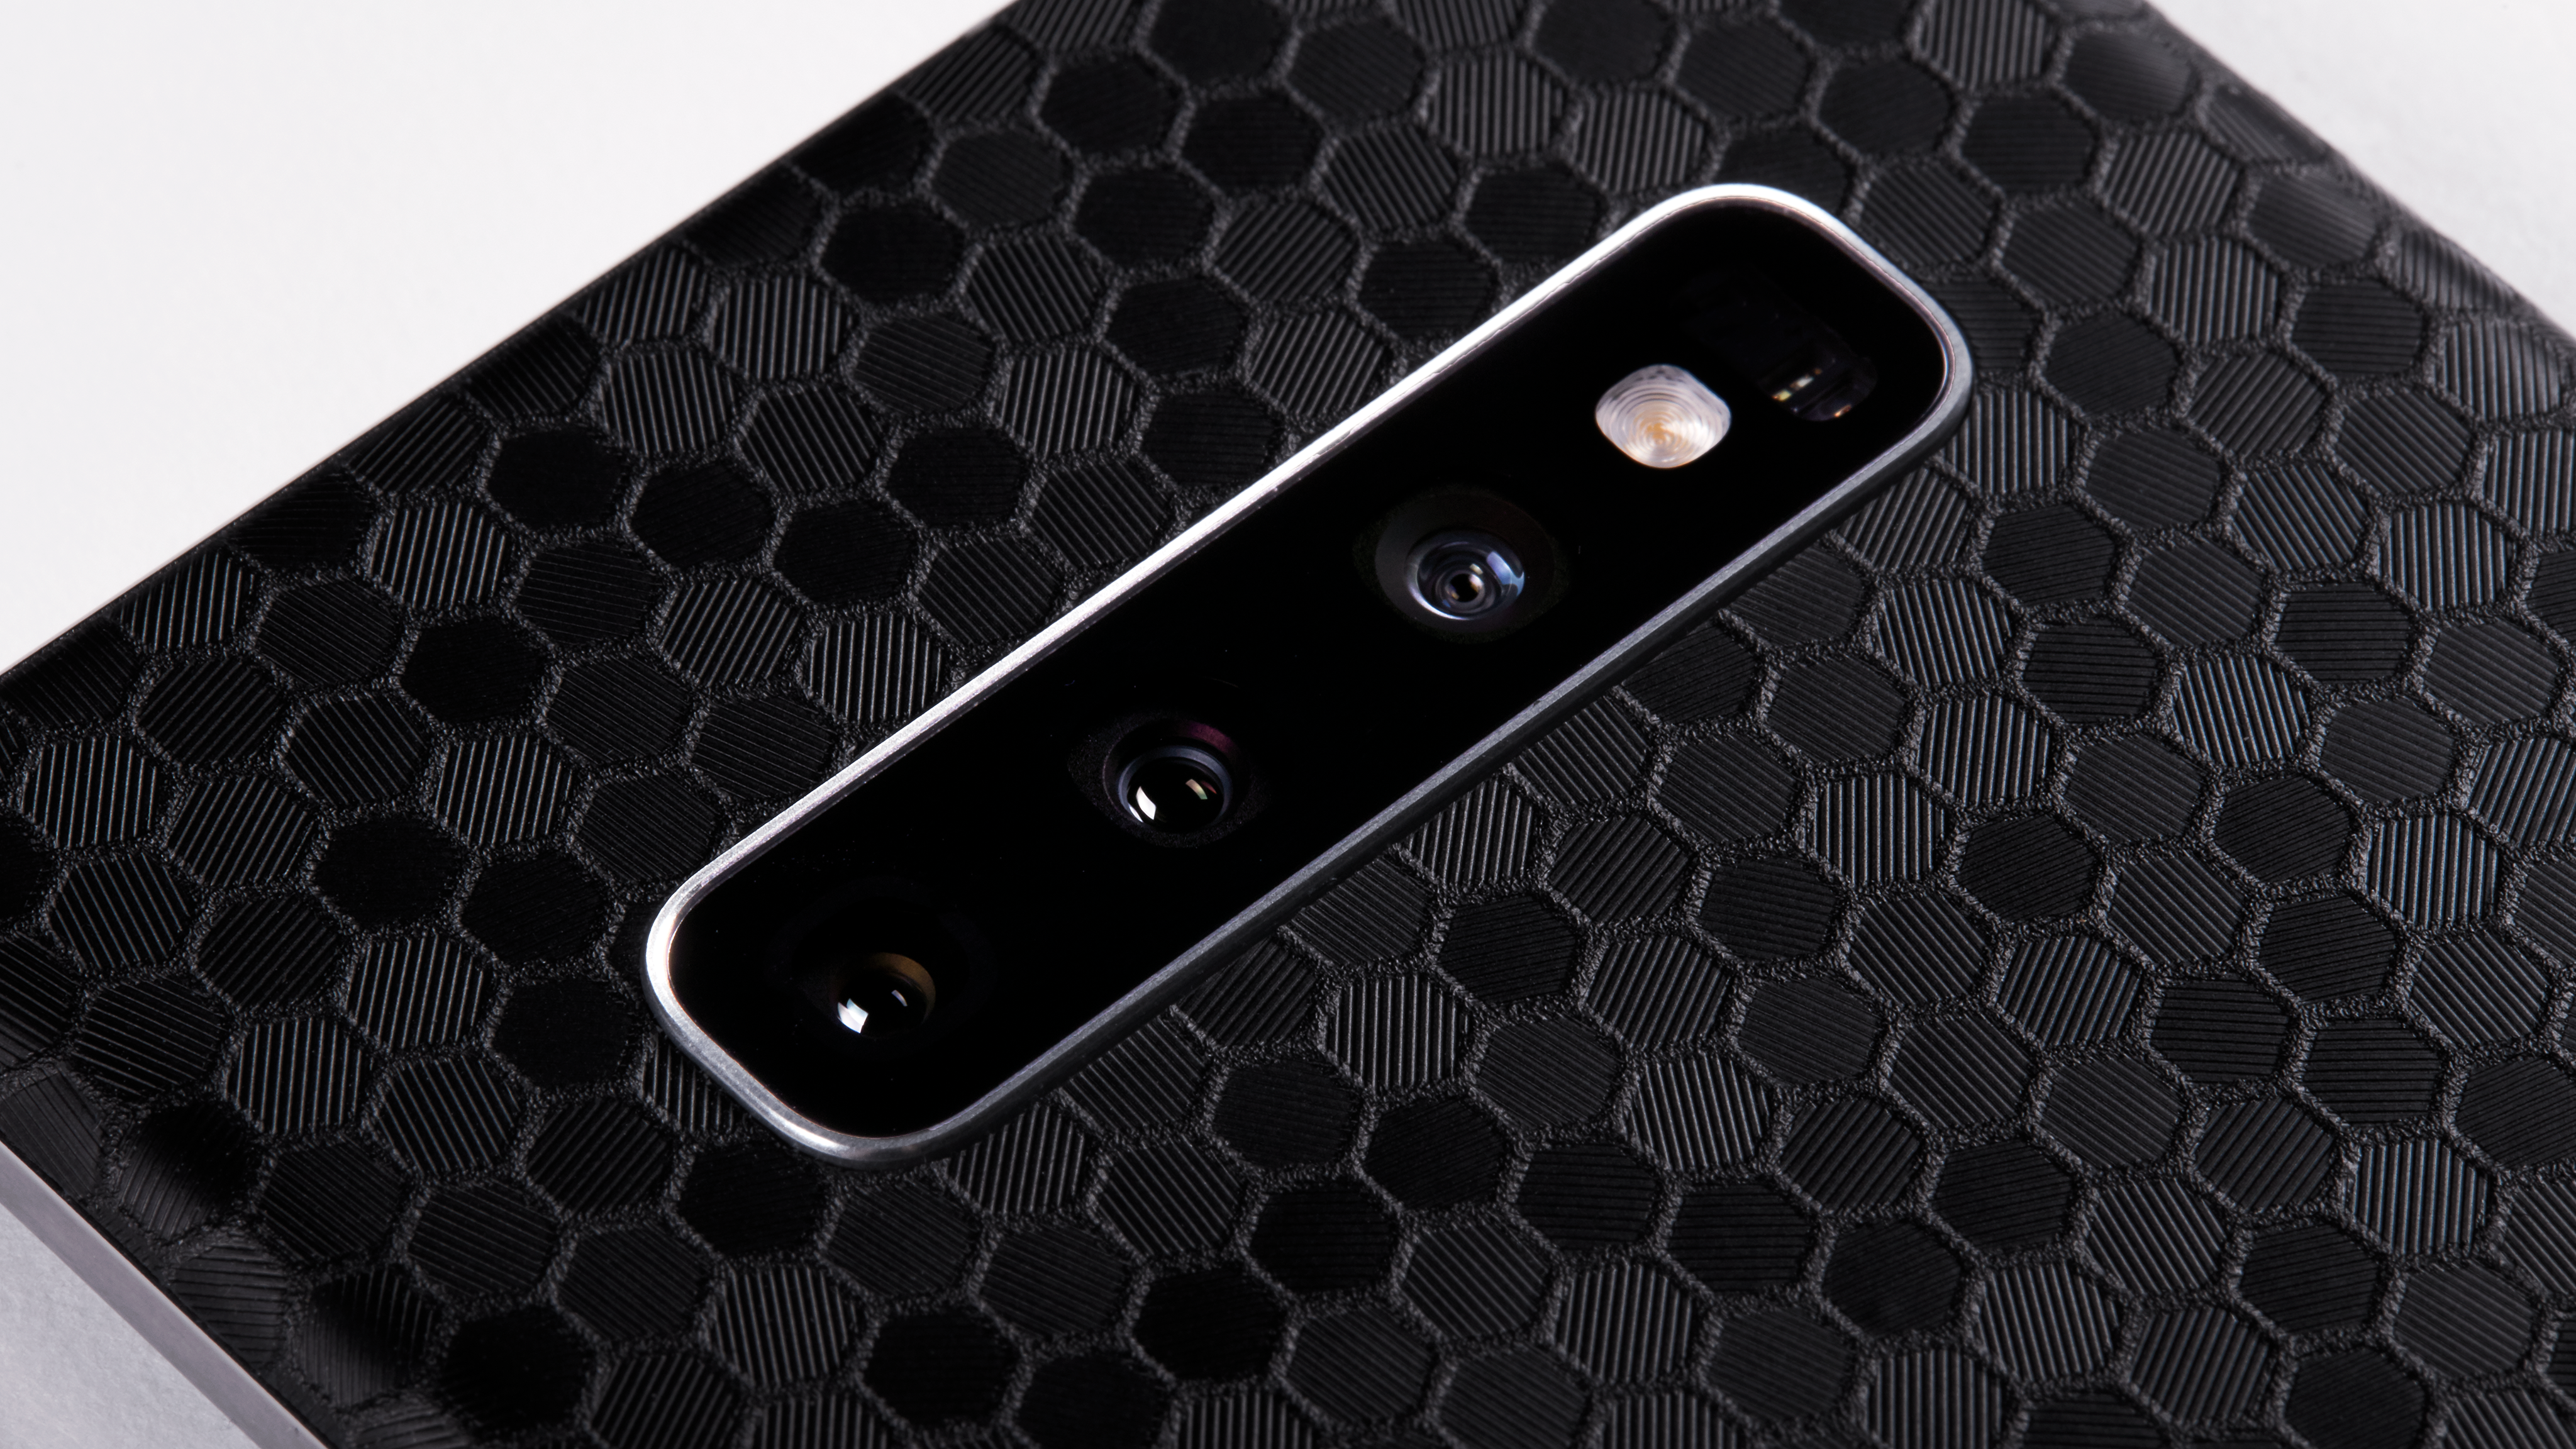 dbrand's new Swarm material is its most textured, tactile